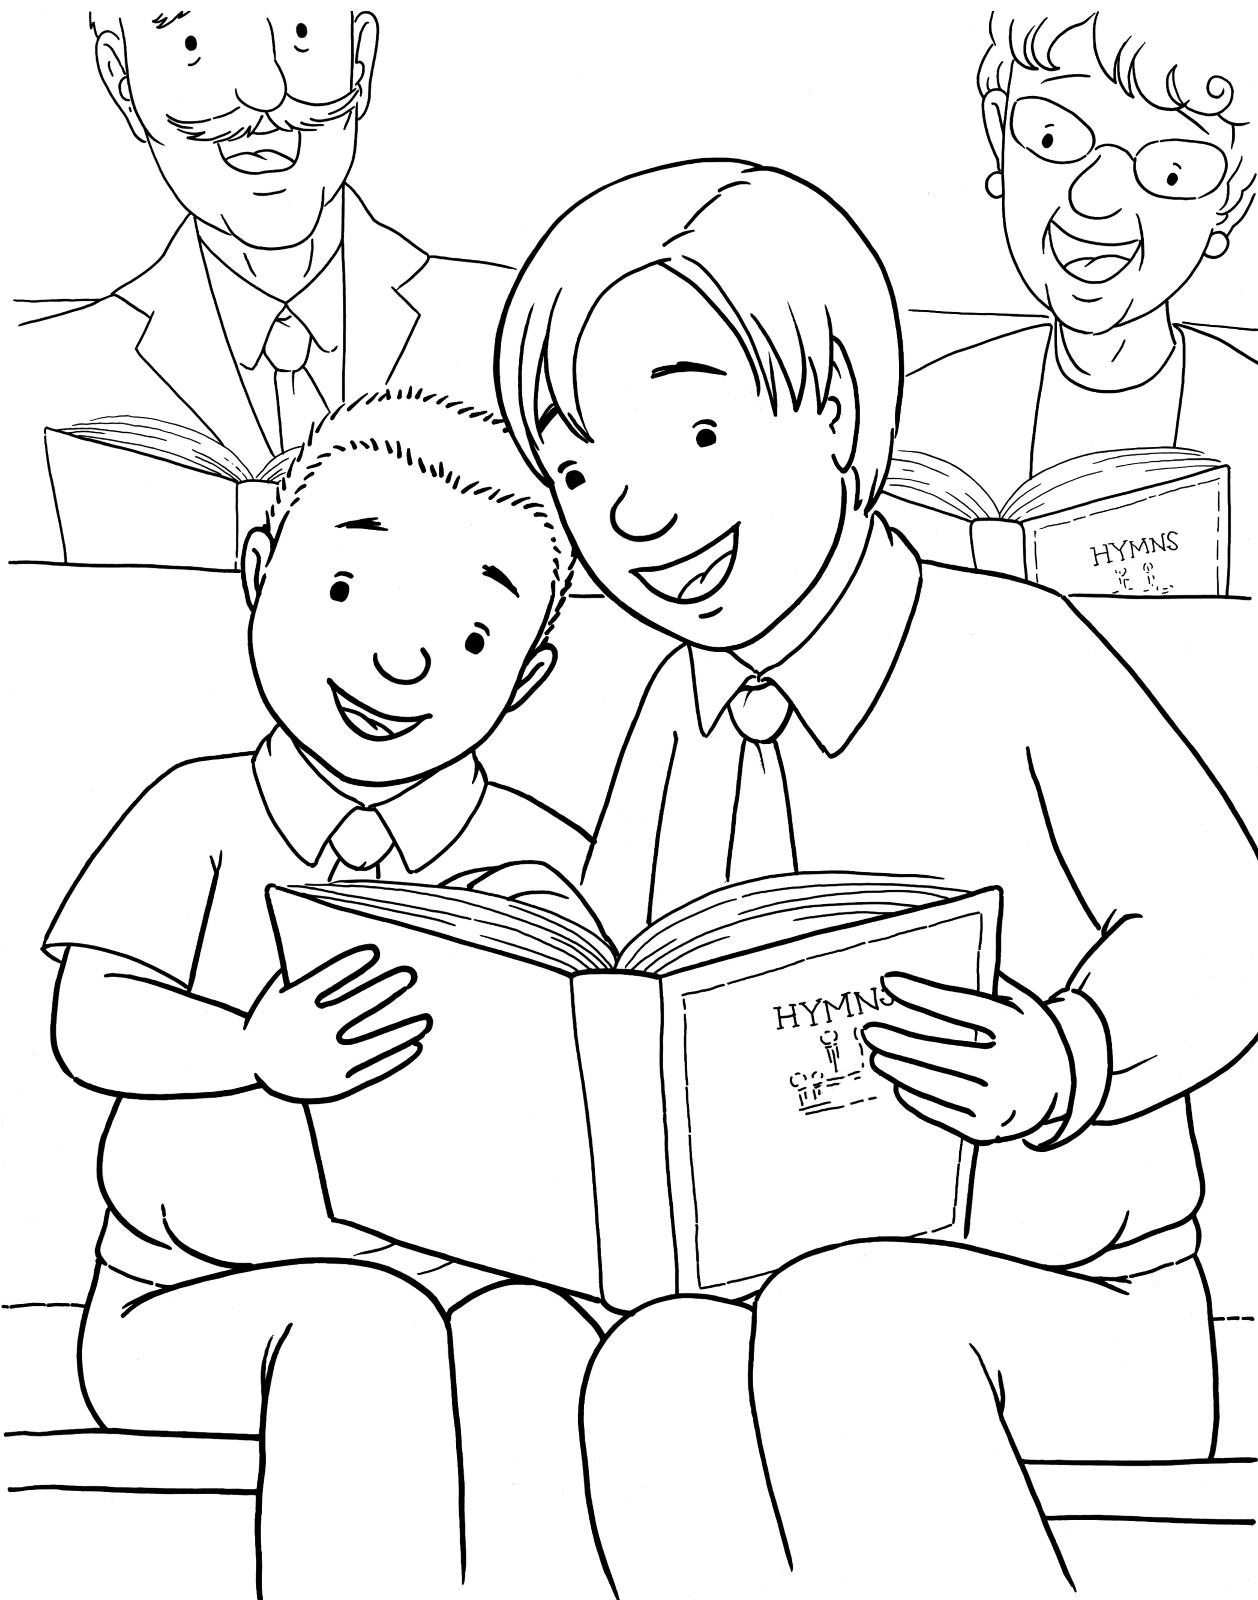 singing in church coloring pages - photo#4